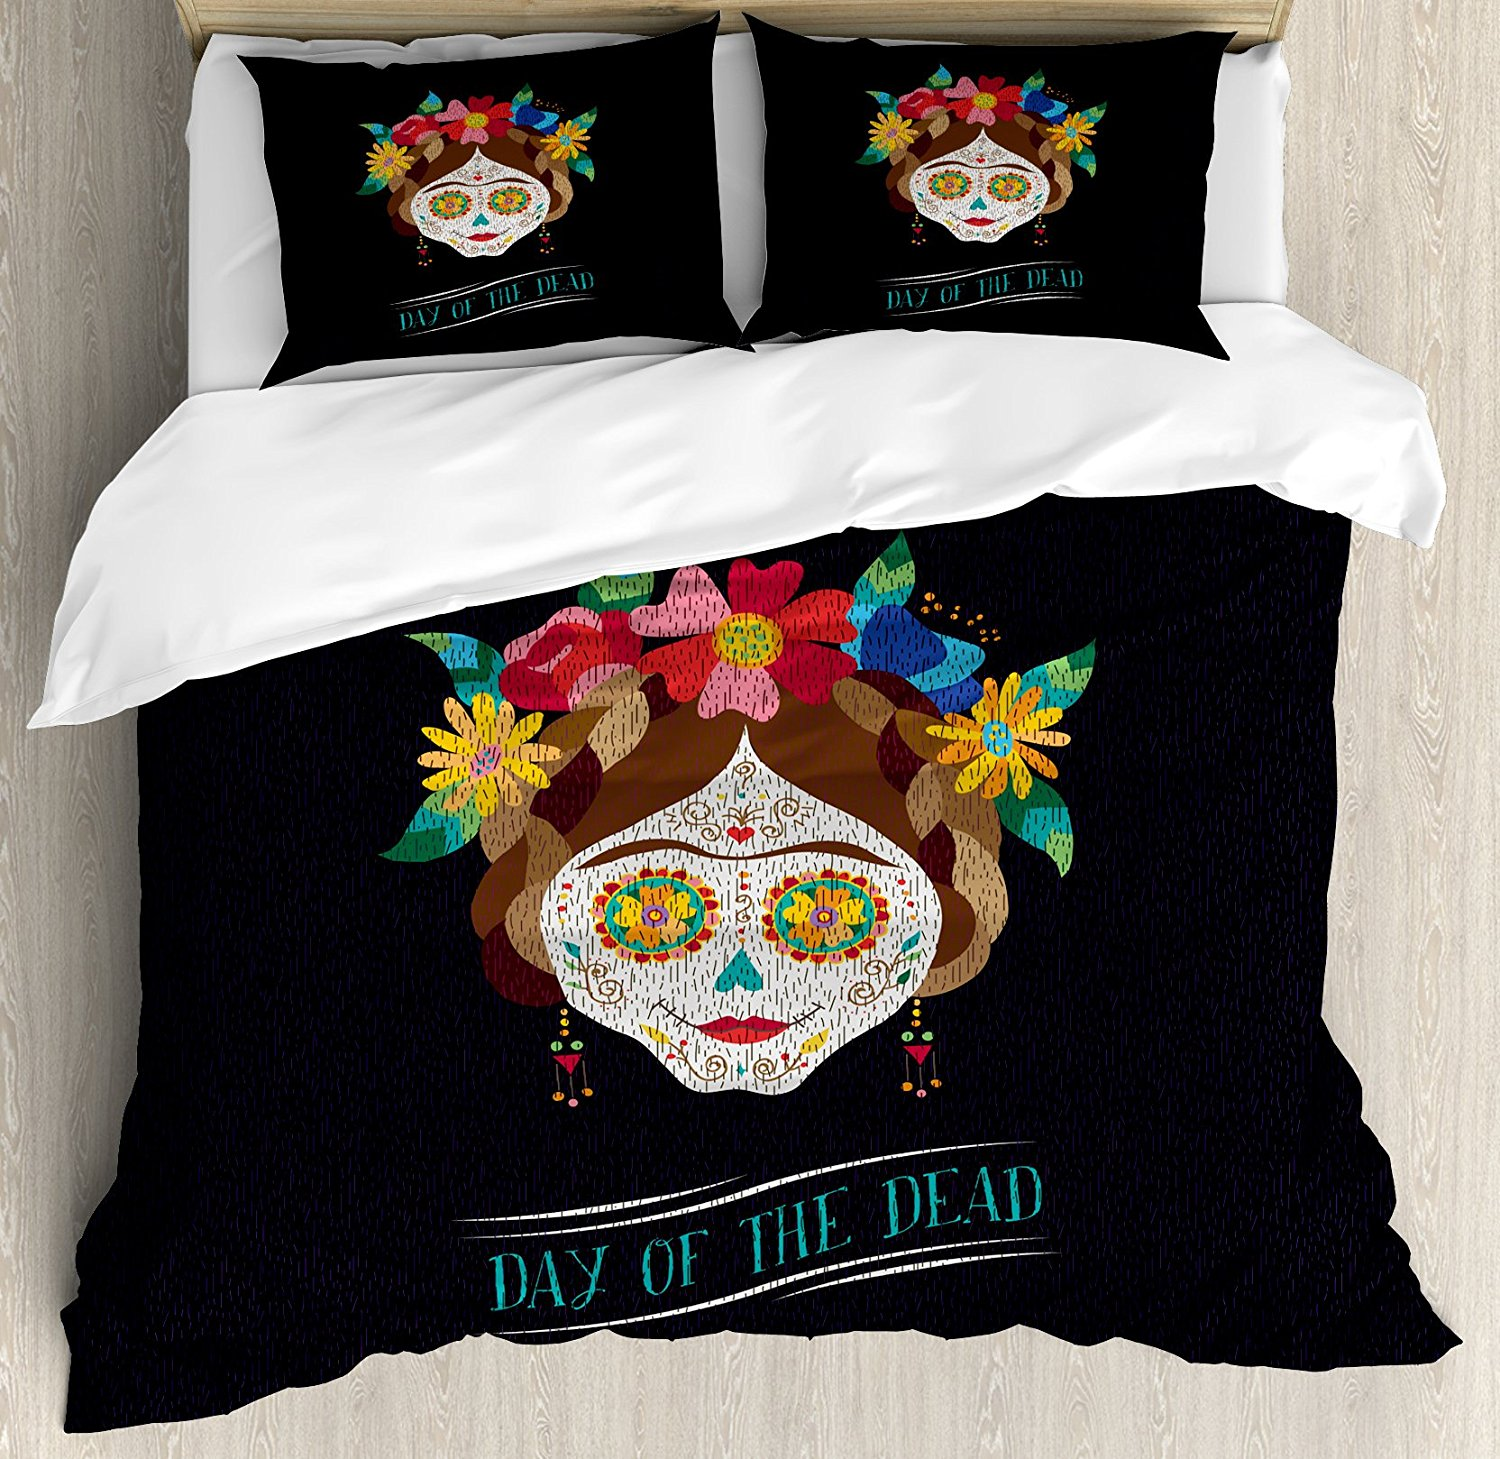 Image of: Day of the Dead Bed Set Black